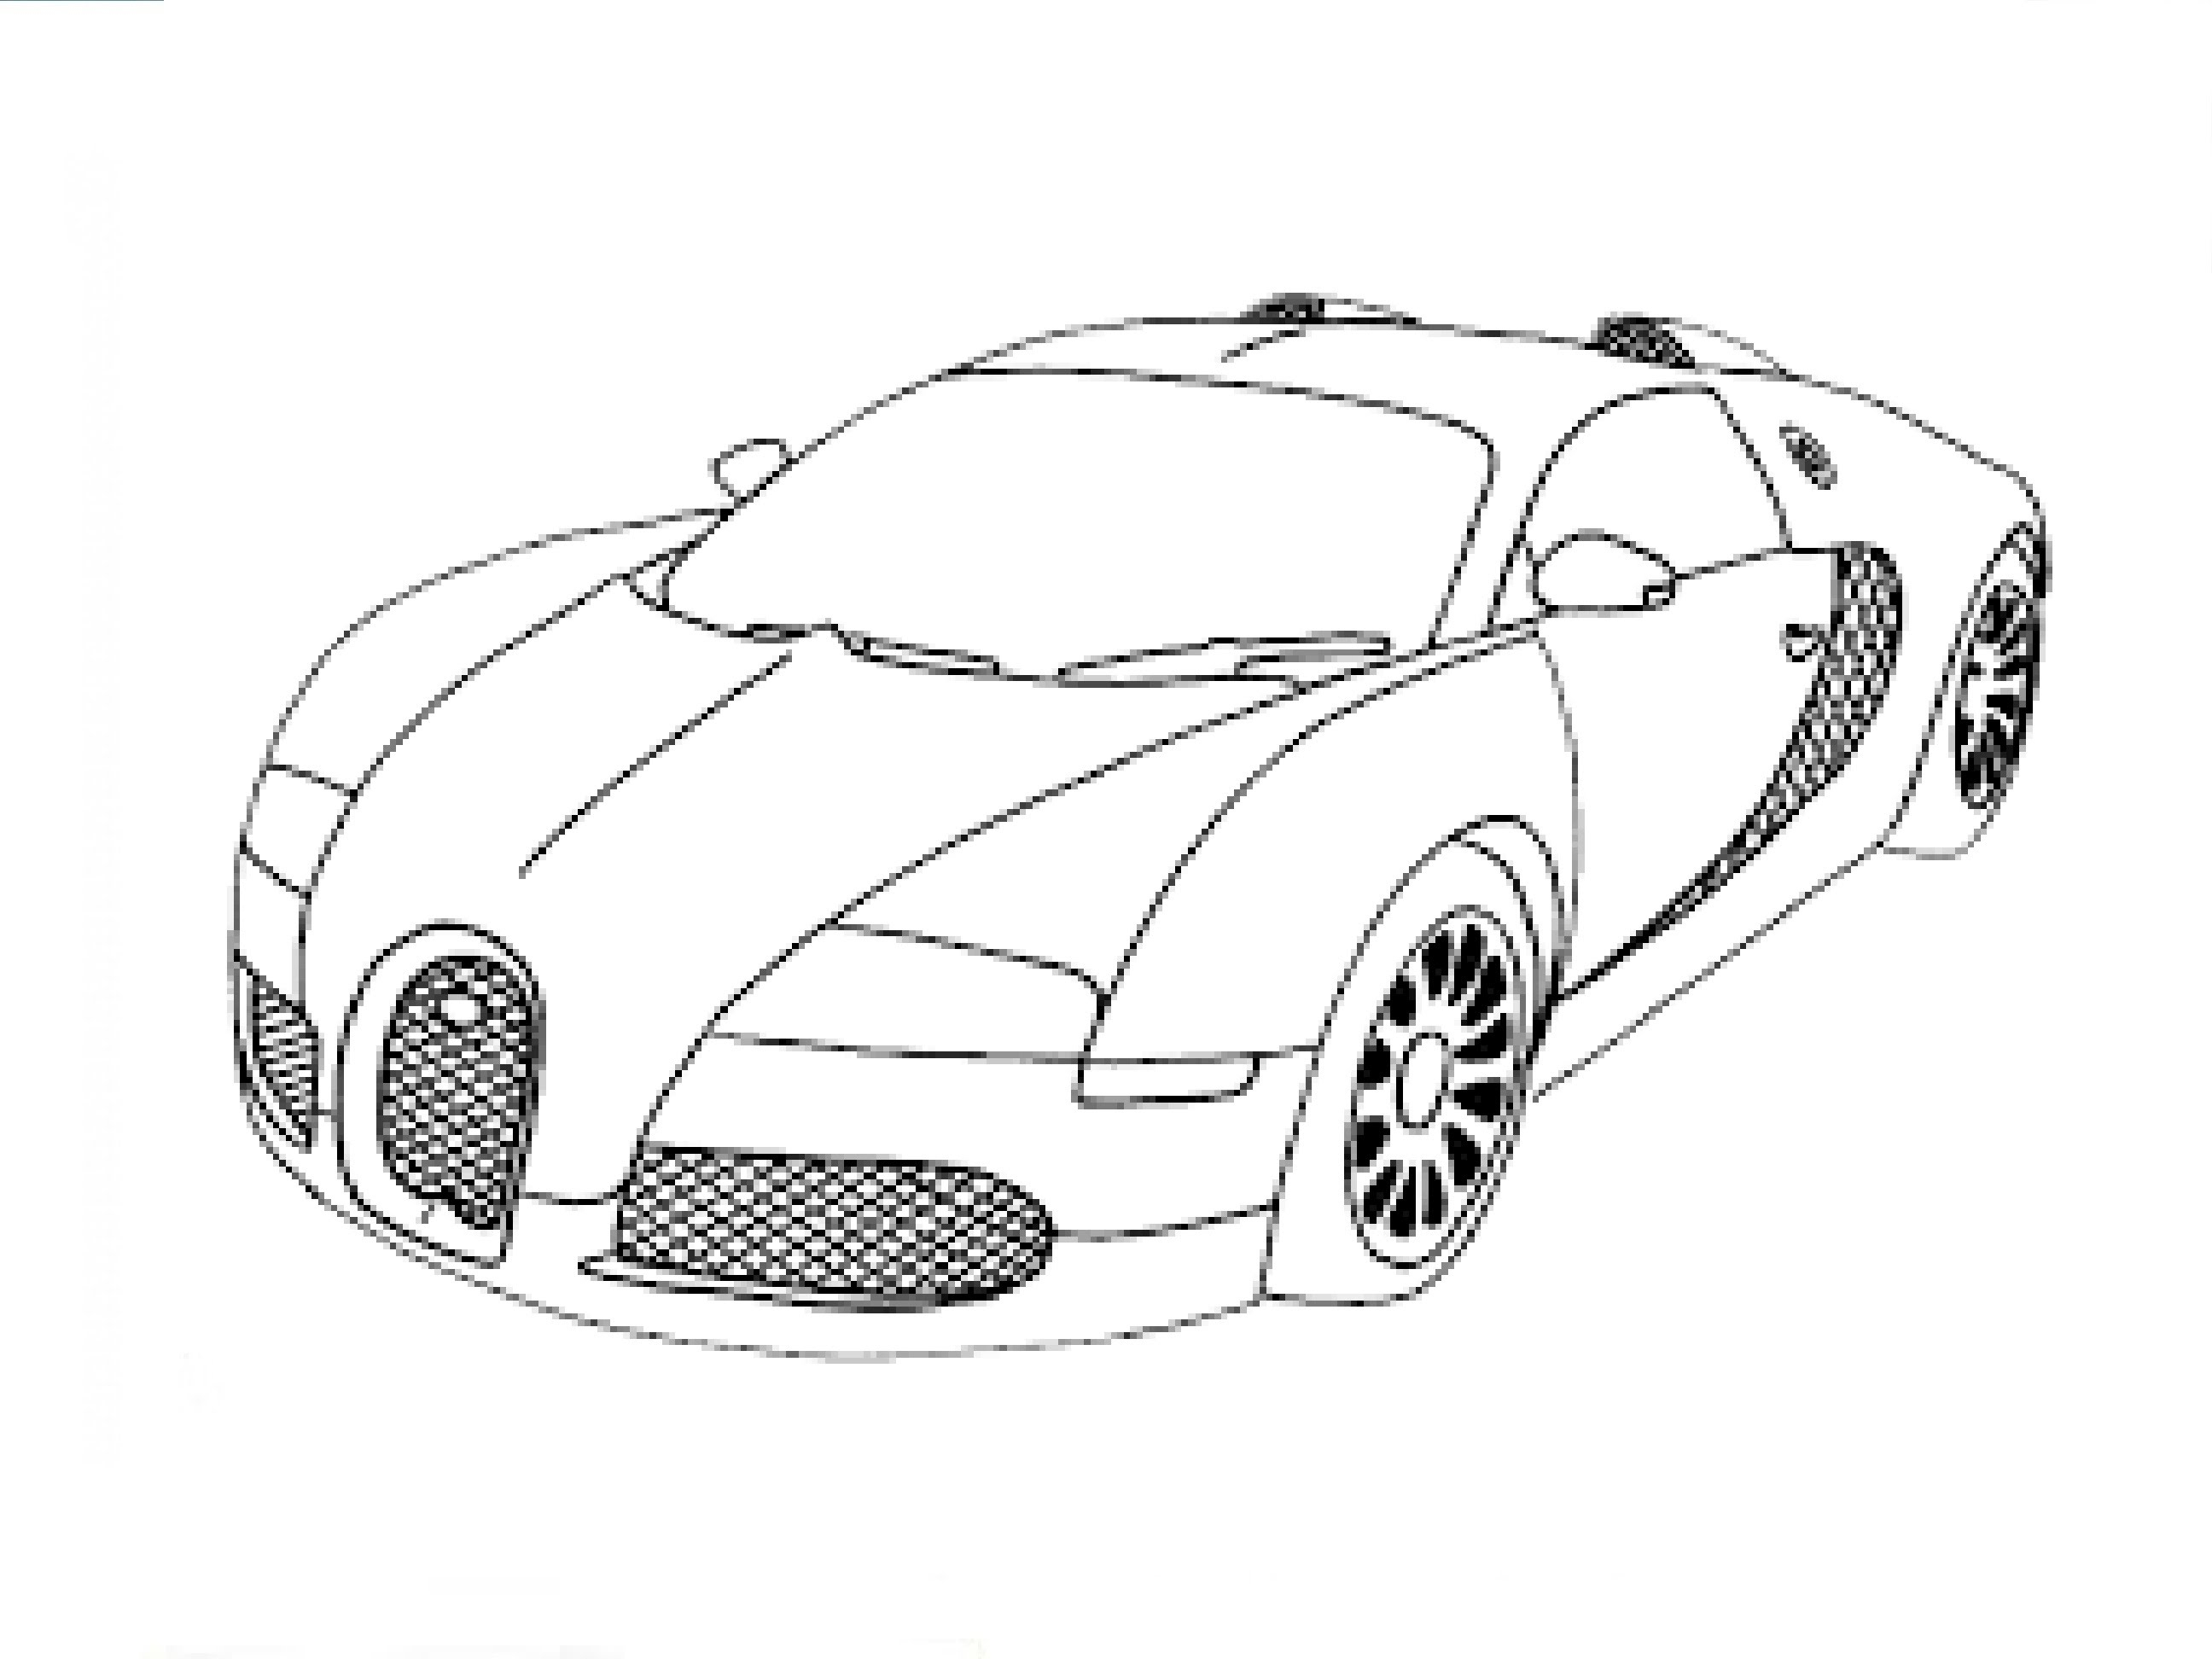 2592x1944 Drawings Of Bugatti Veyron In 3d Cars Archives